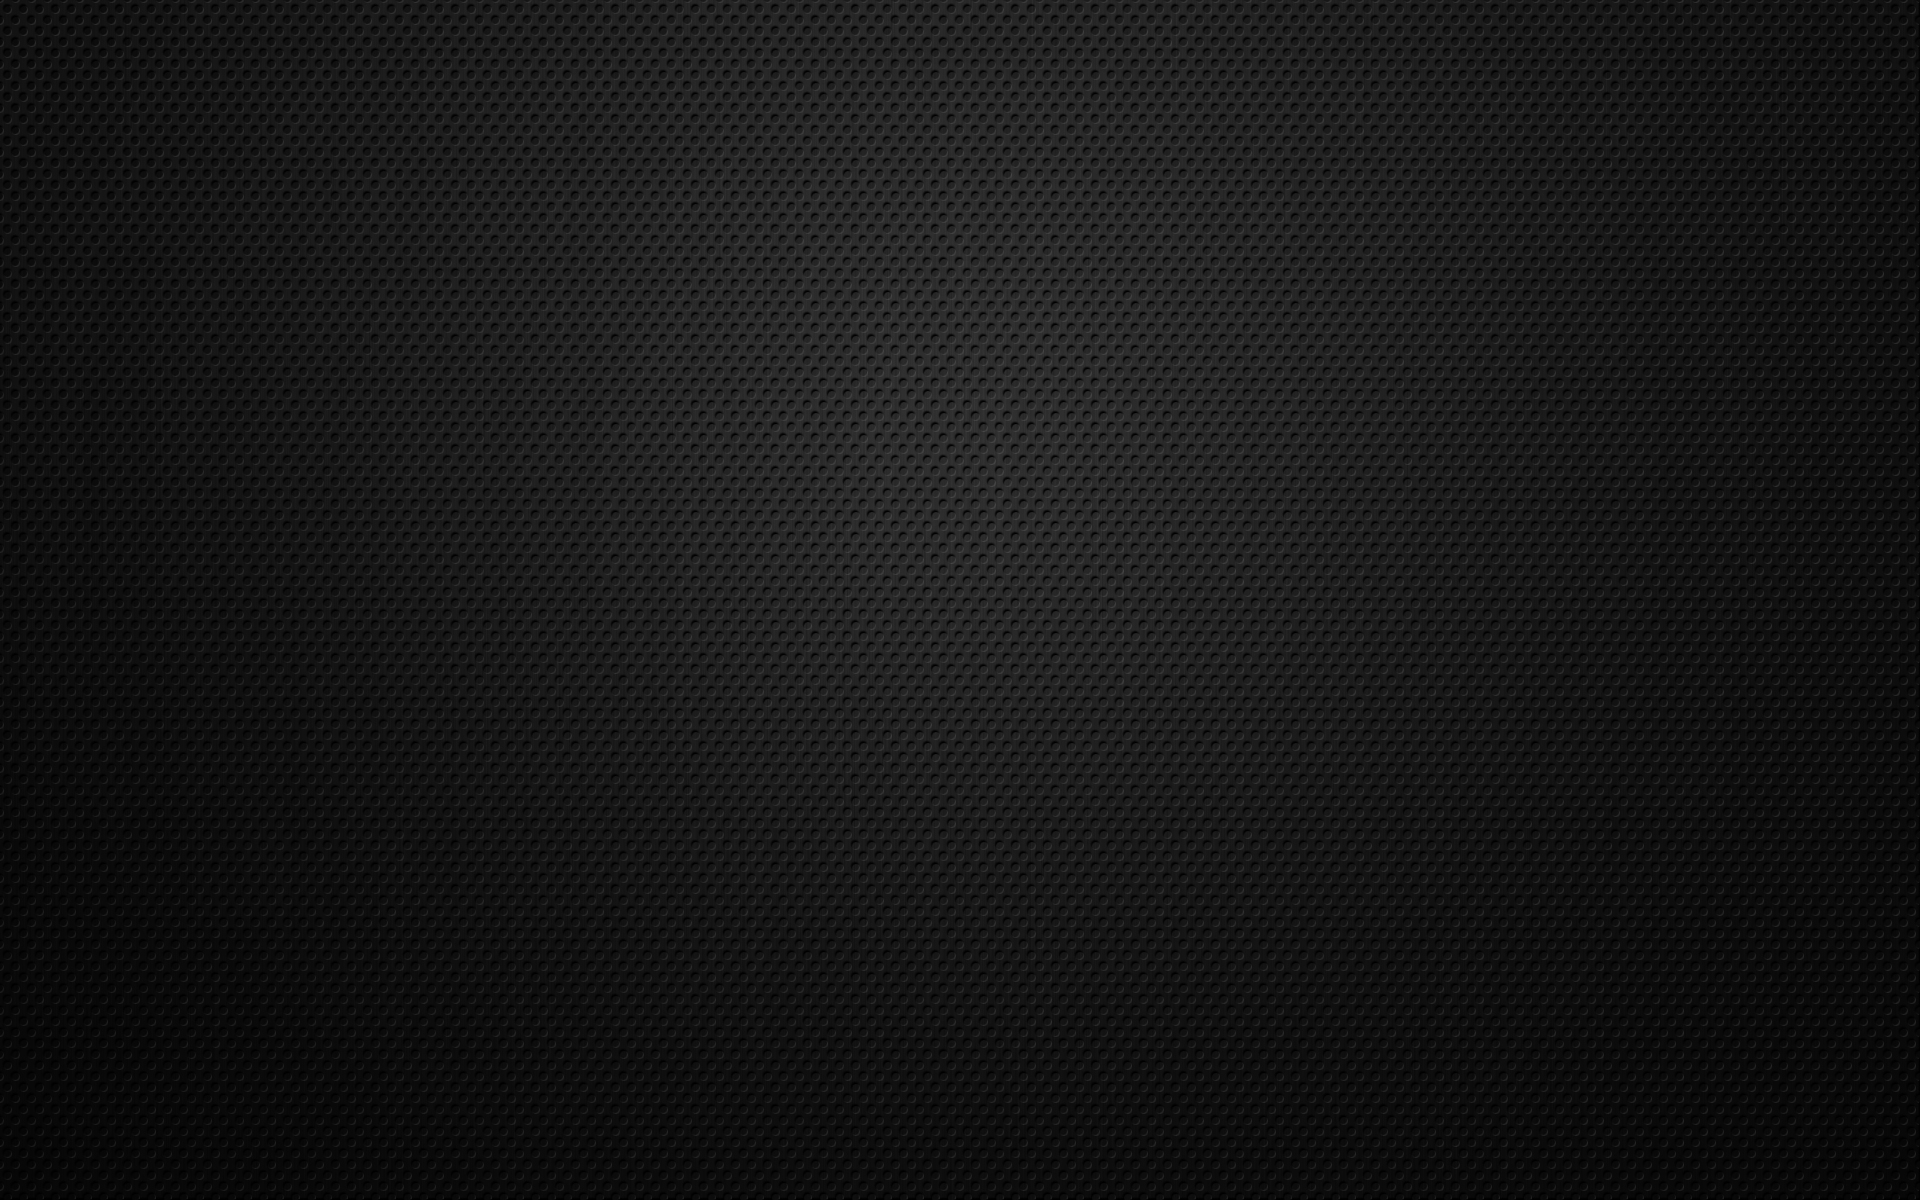 Black Backgrounds wallpaper 1920x1200 44693 1920x1200